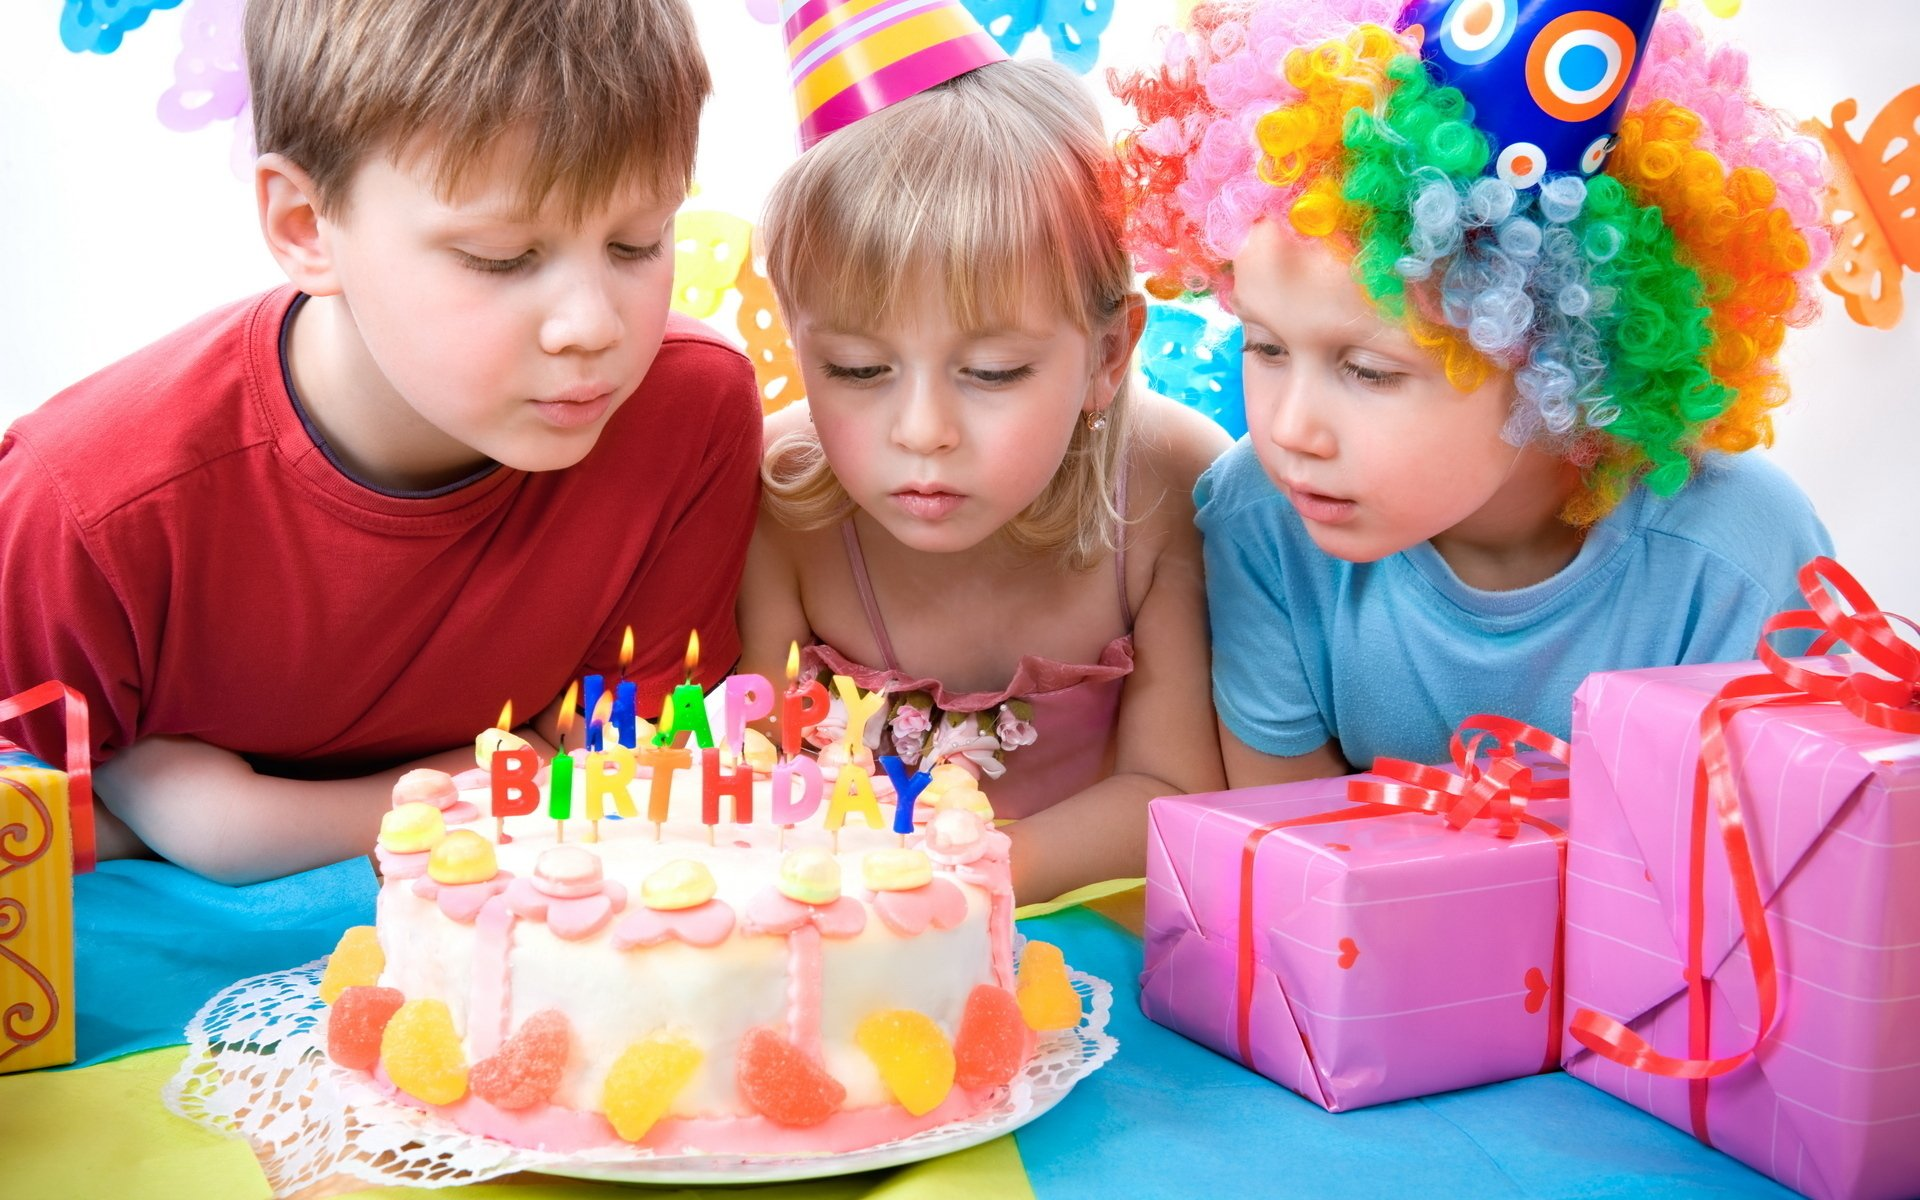 Holiday - Birthday  Child Cake Candle Wallpaper